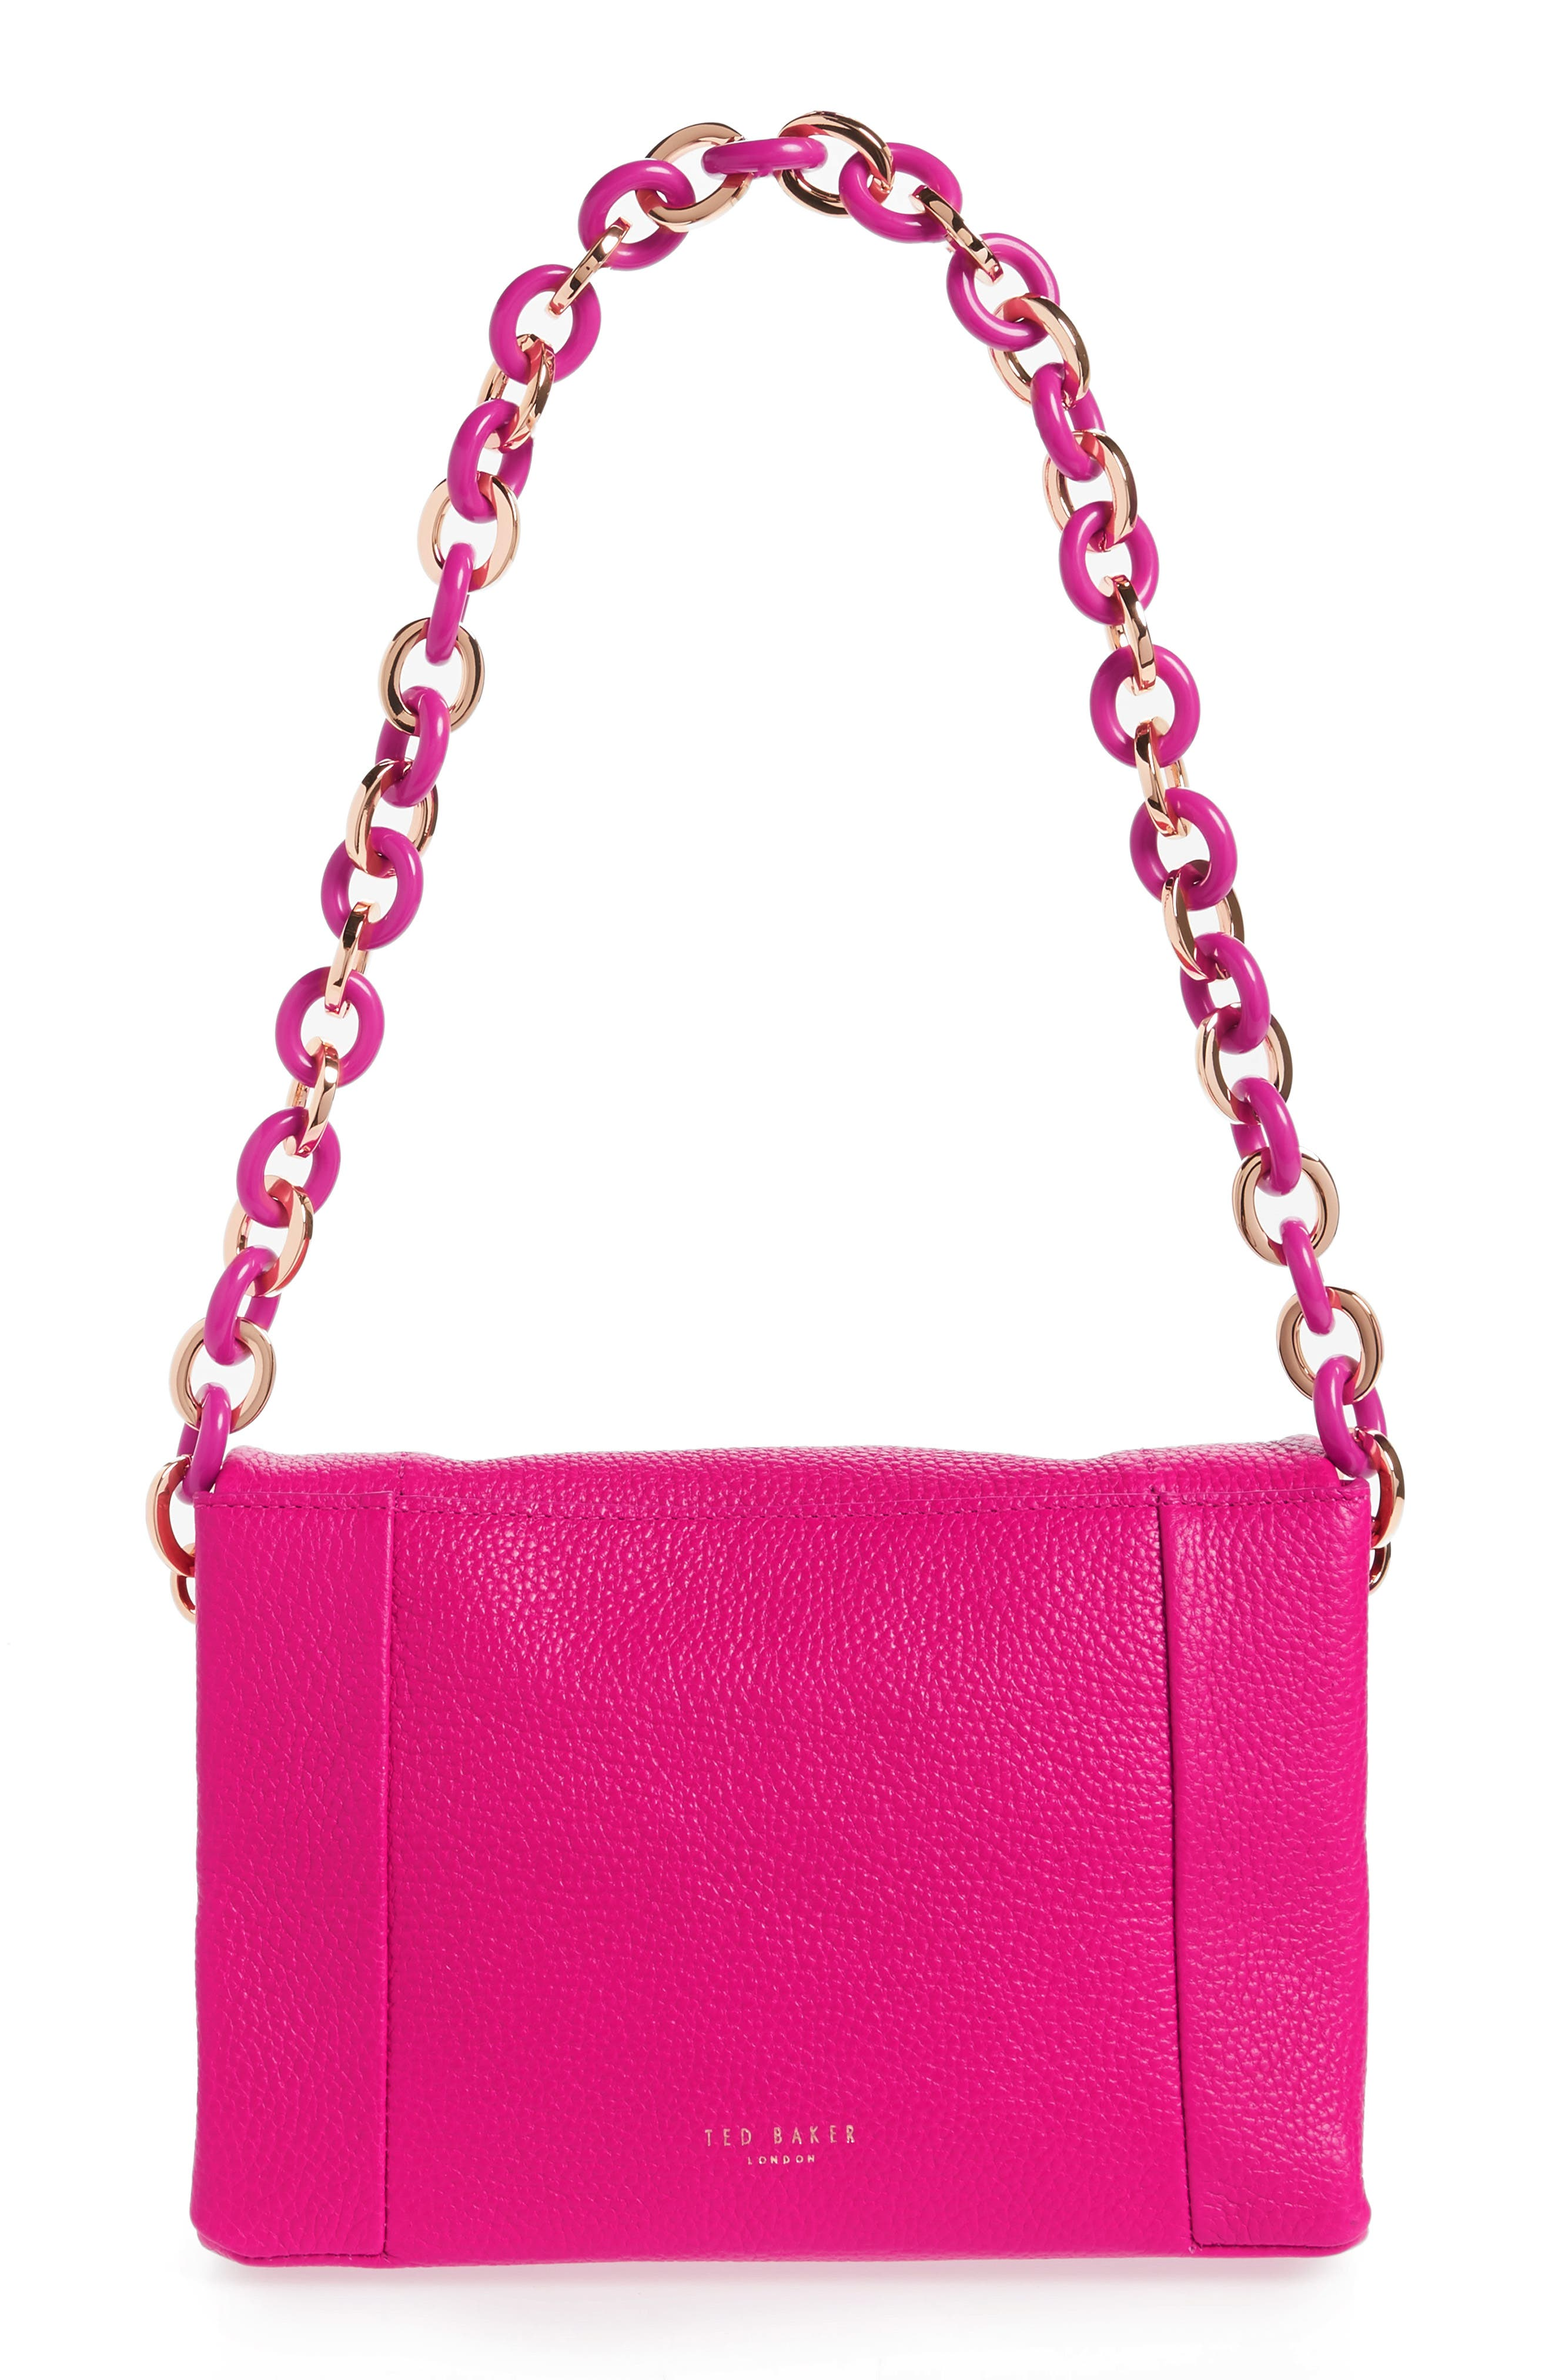 Ipomoea Leather Shoulder Bag,                             Alternate thumbnail 3, color,                             FUCHSIA